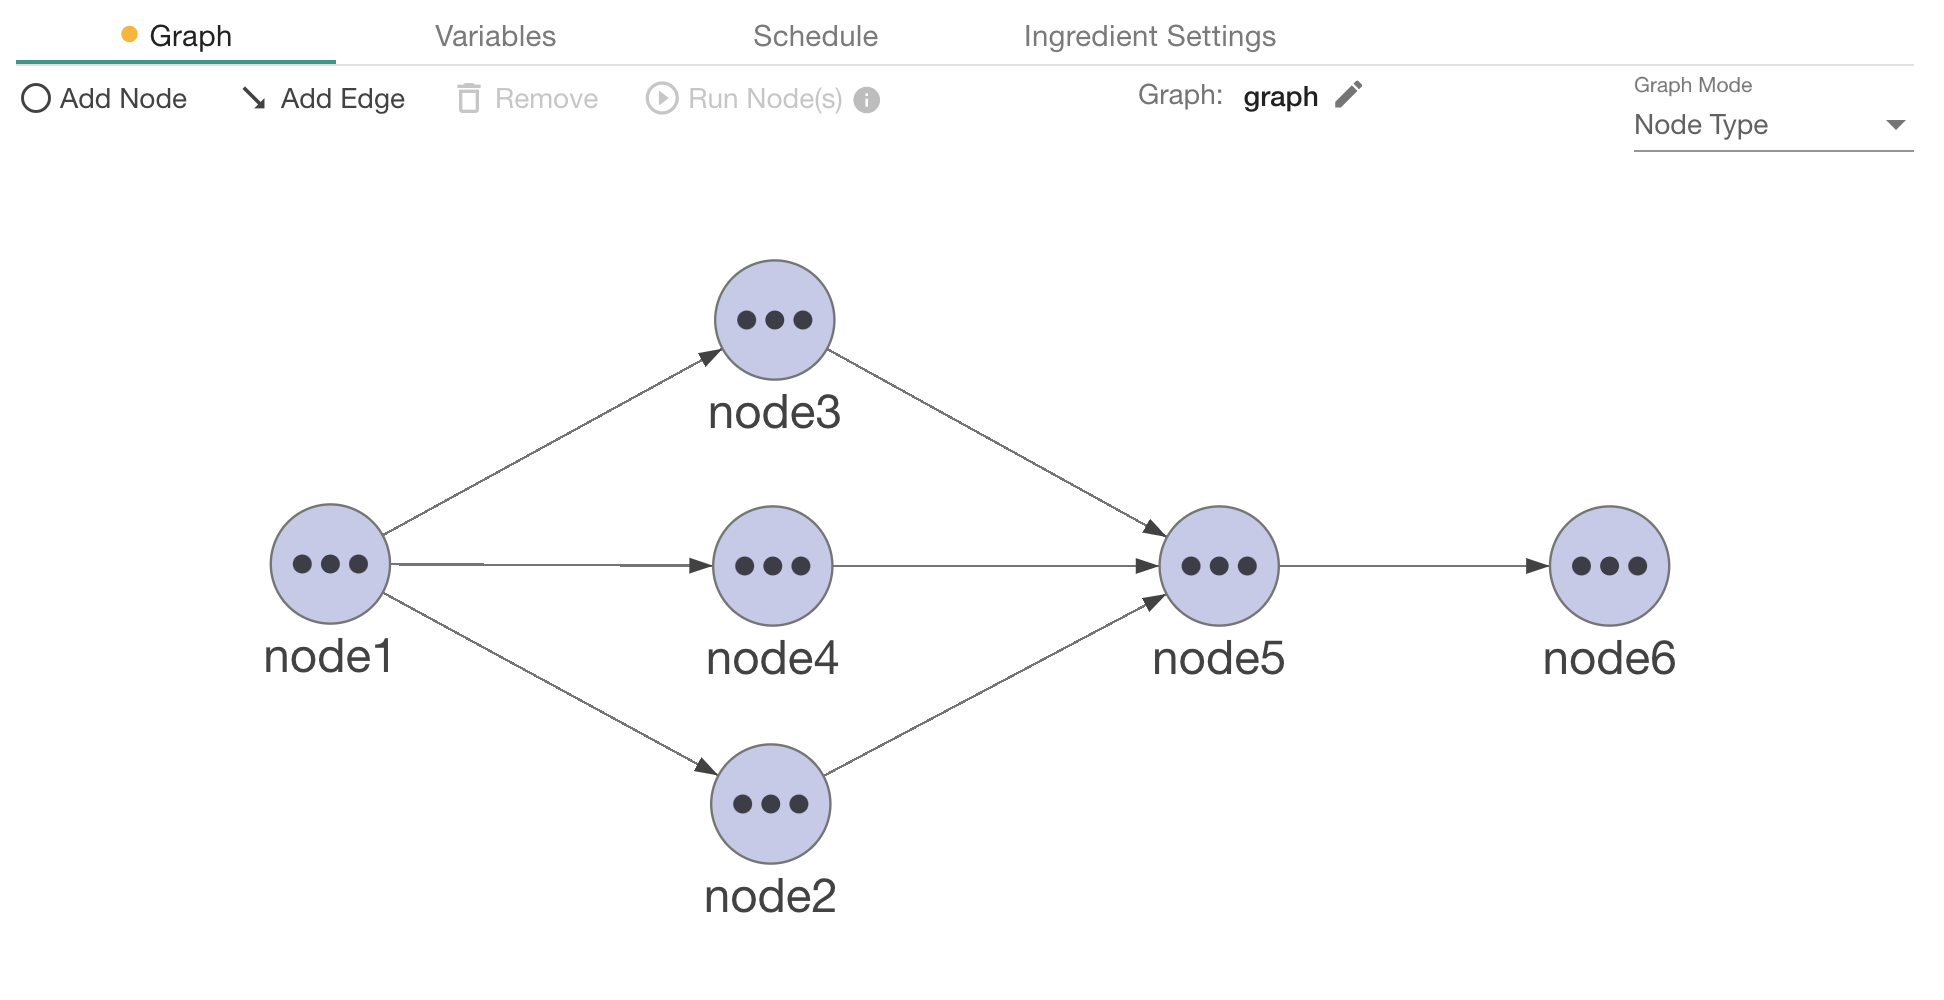 A graph with nodes in parallel and in series.